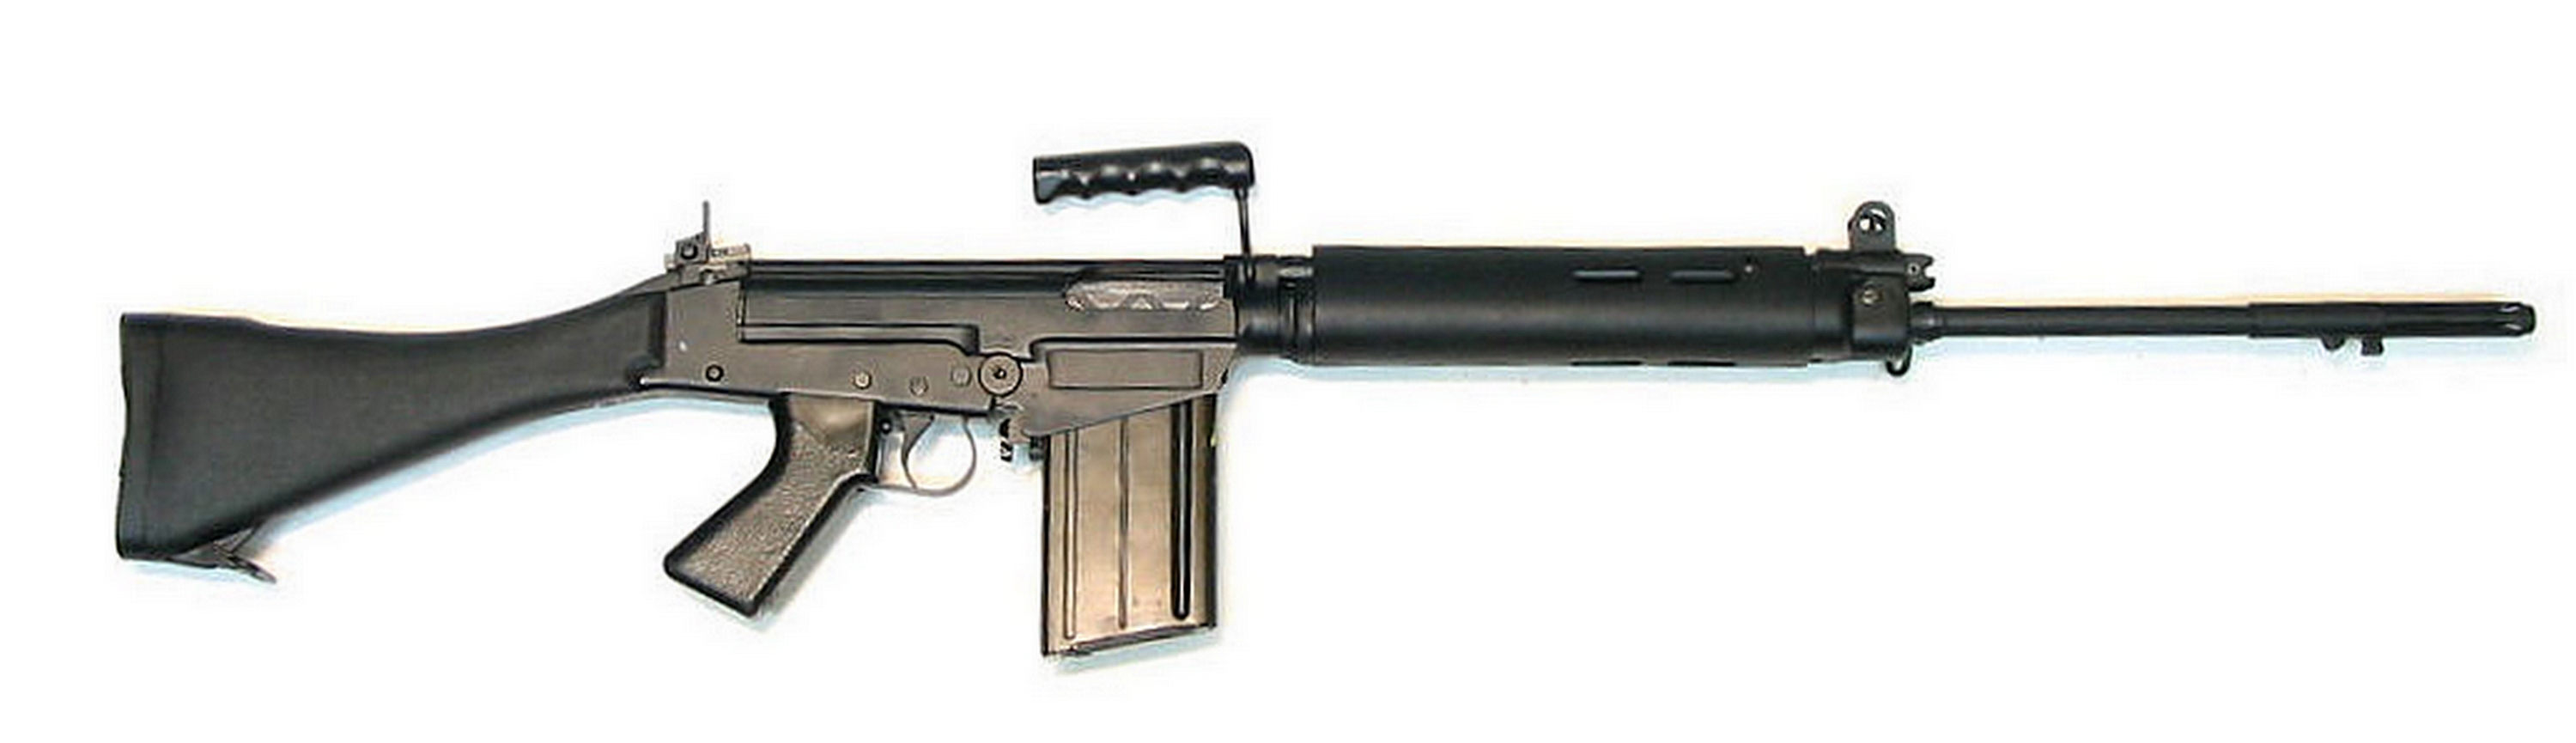 L1a1 Win Armurerie Cal Lavaux Anglais Fal 308 xodCrBe